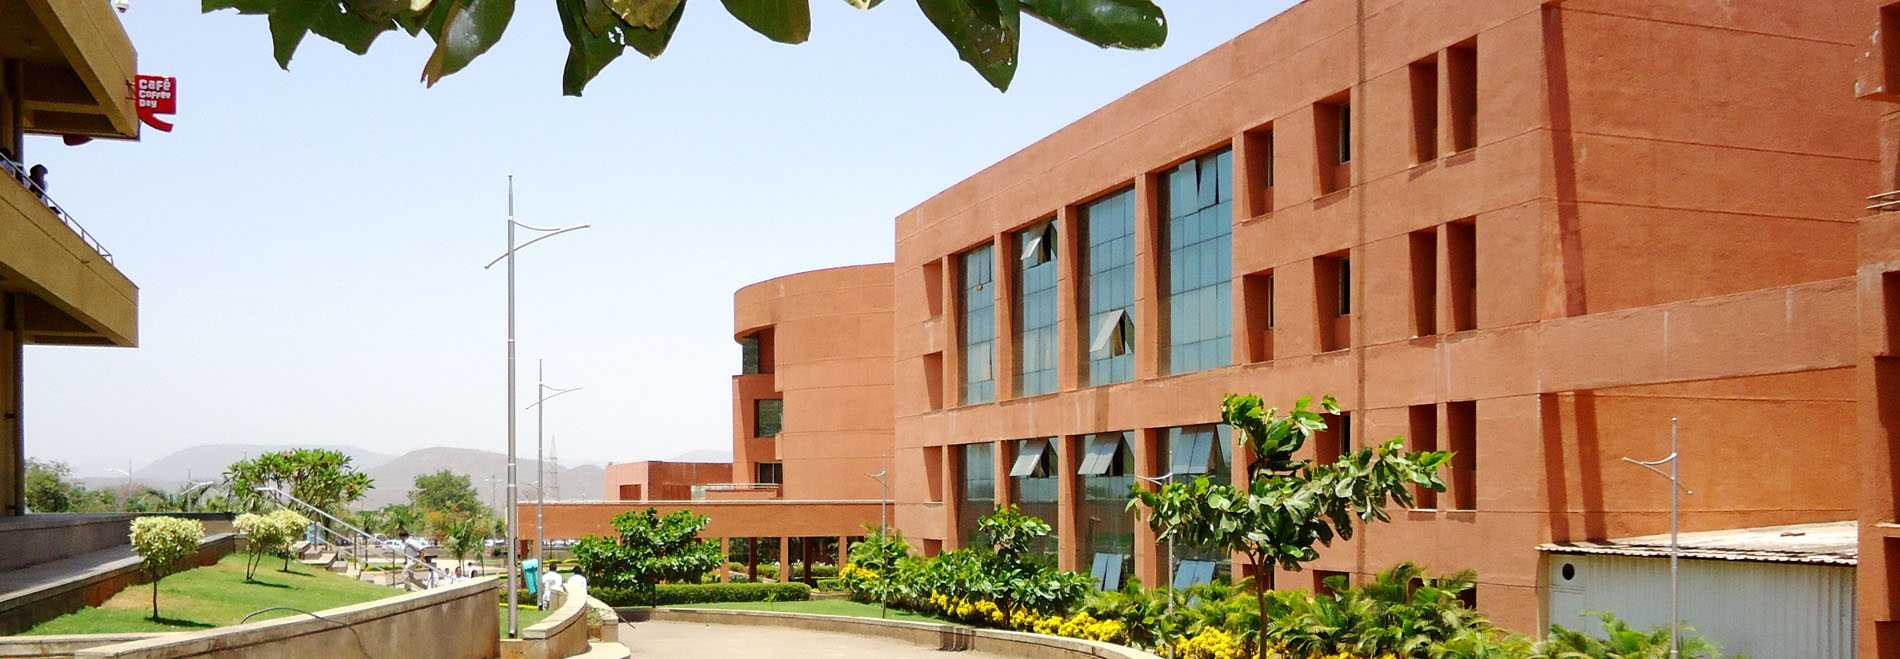 Symbiosis School of Biological Sciences (SSBS), Pune